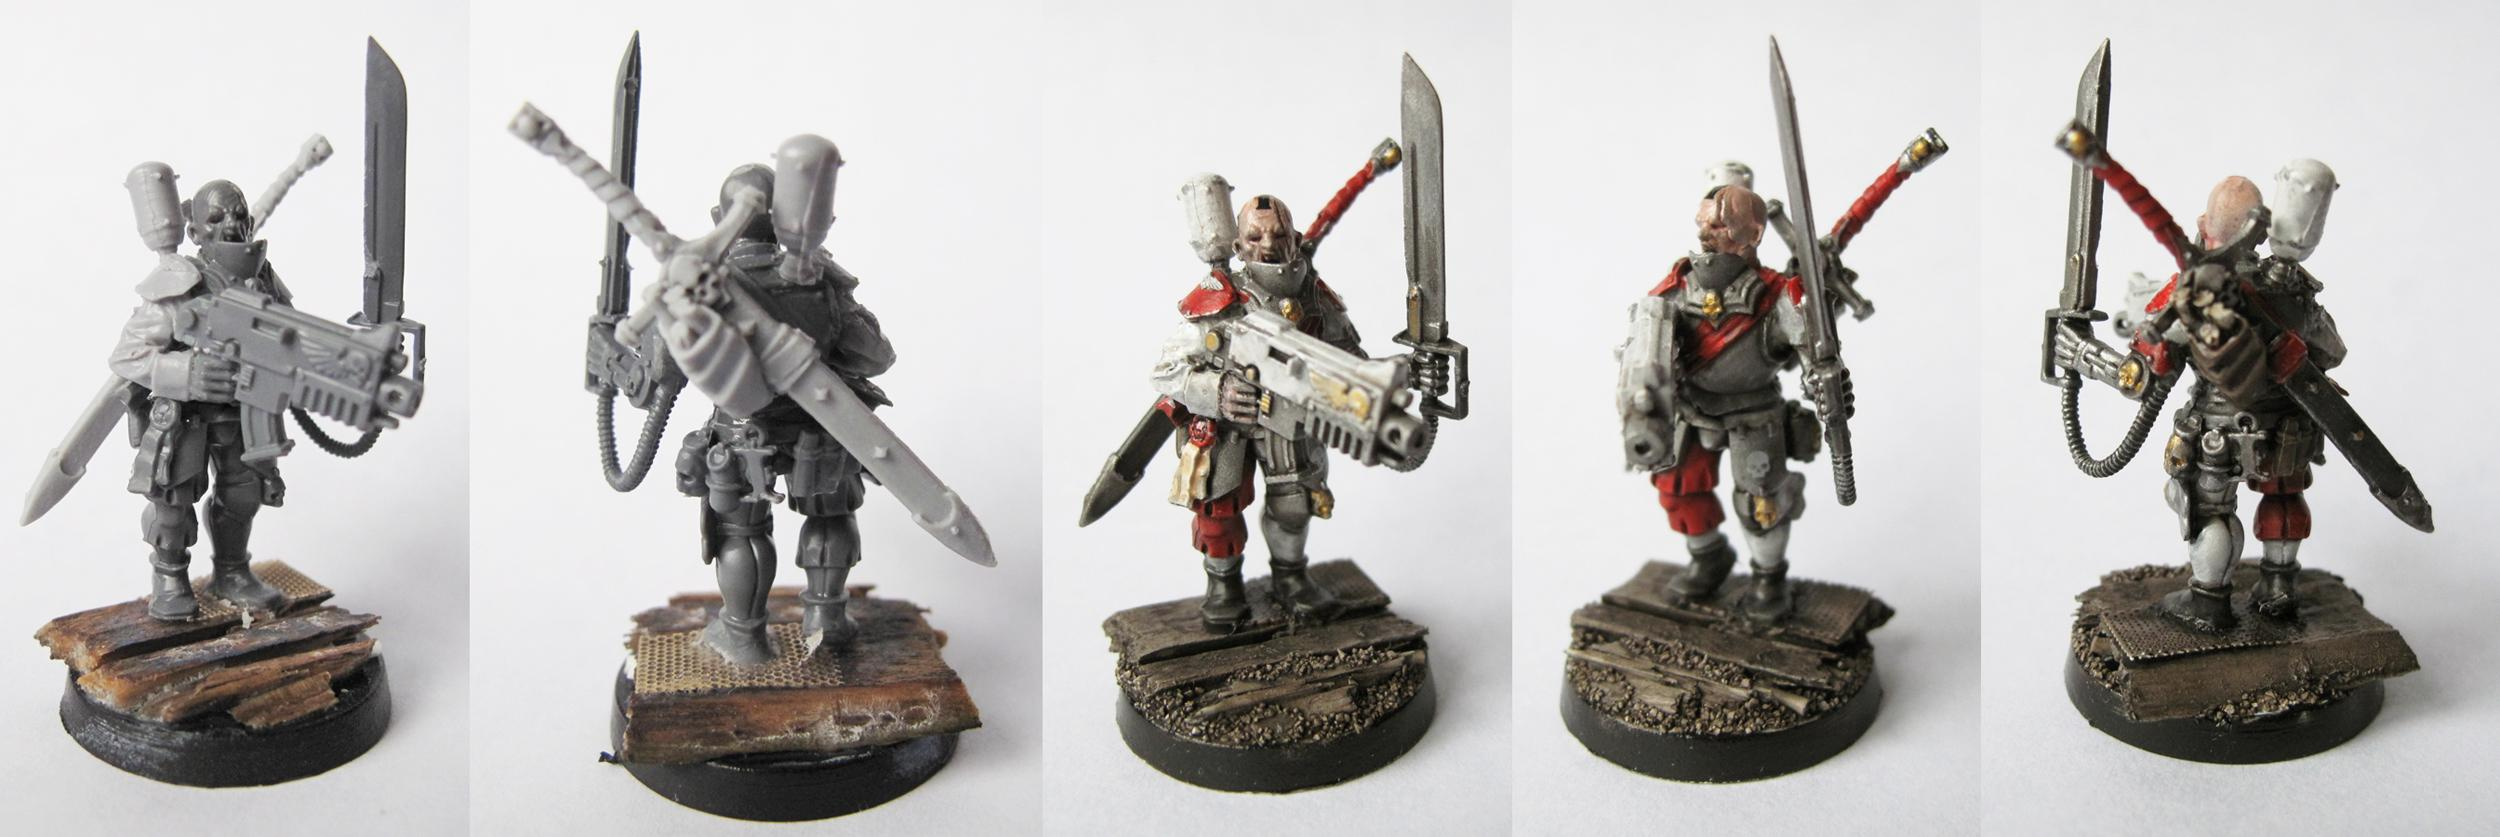 Inq28, Inquisitor, inquisitor